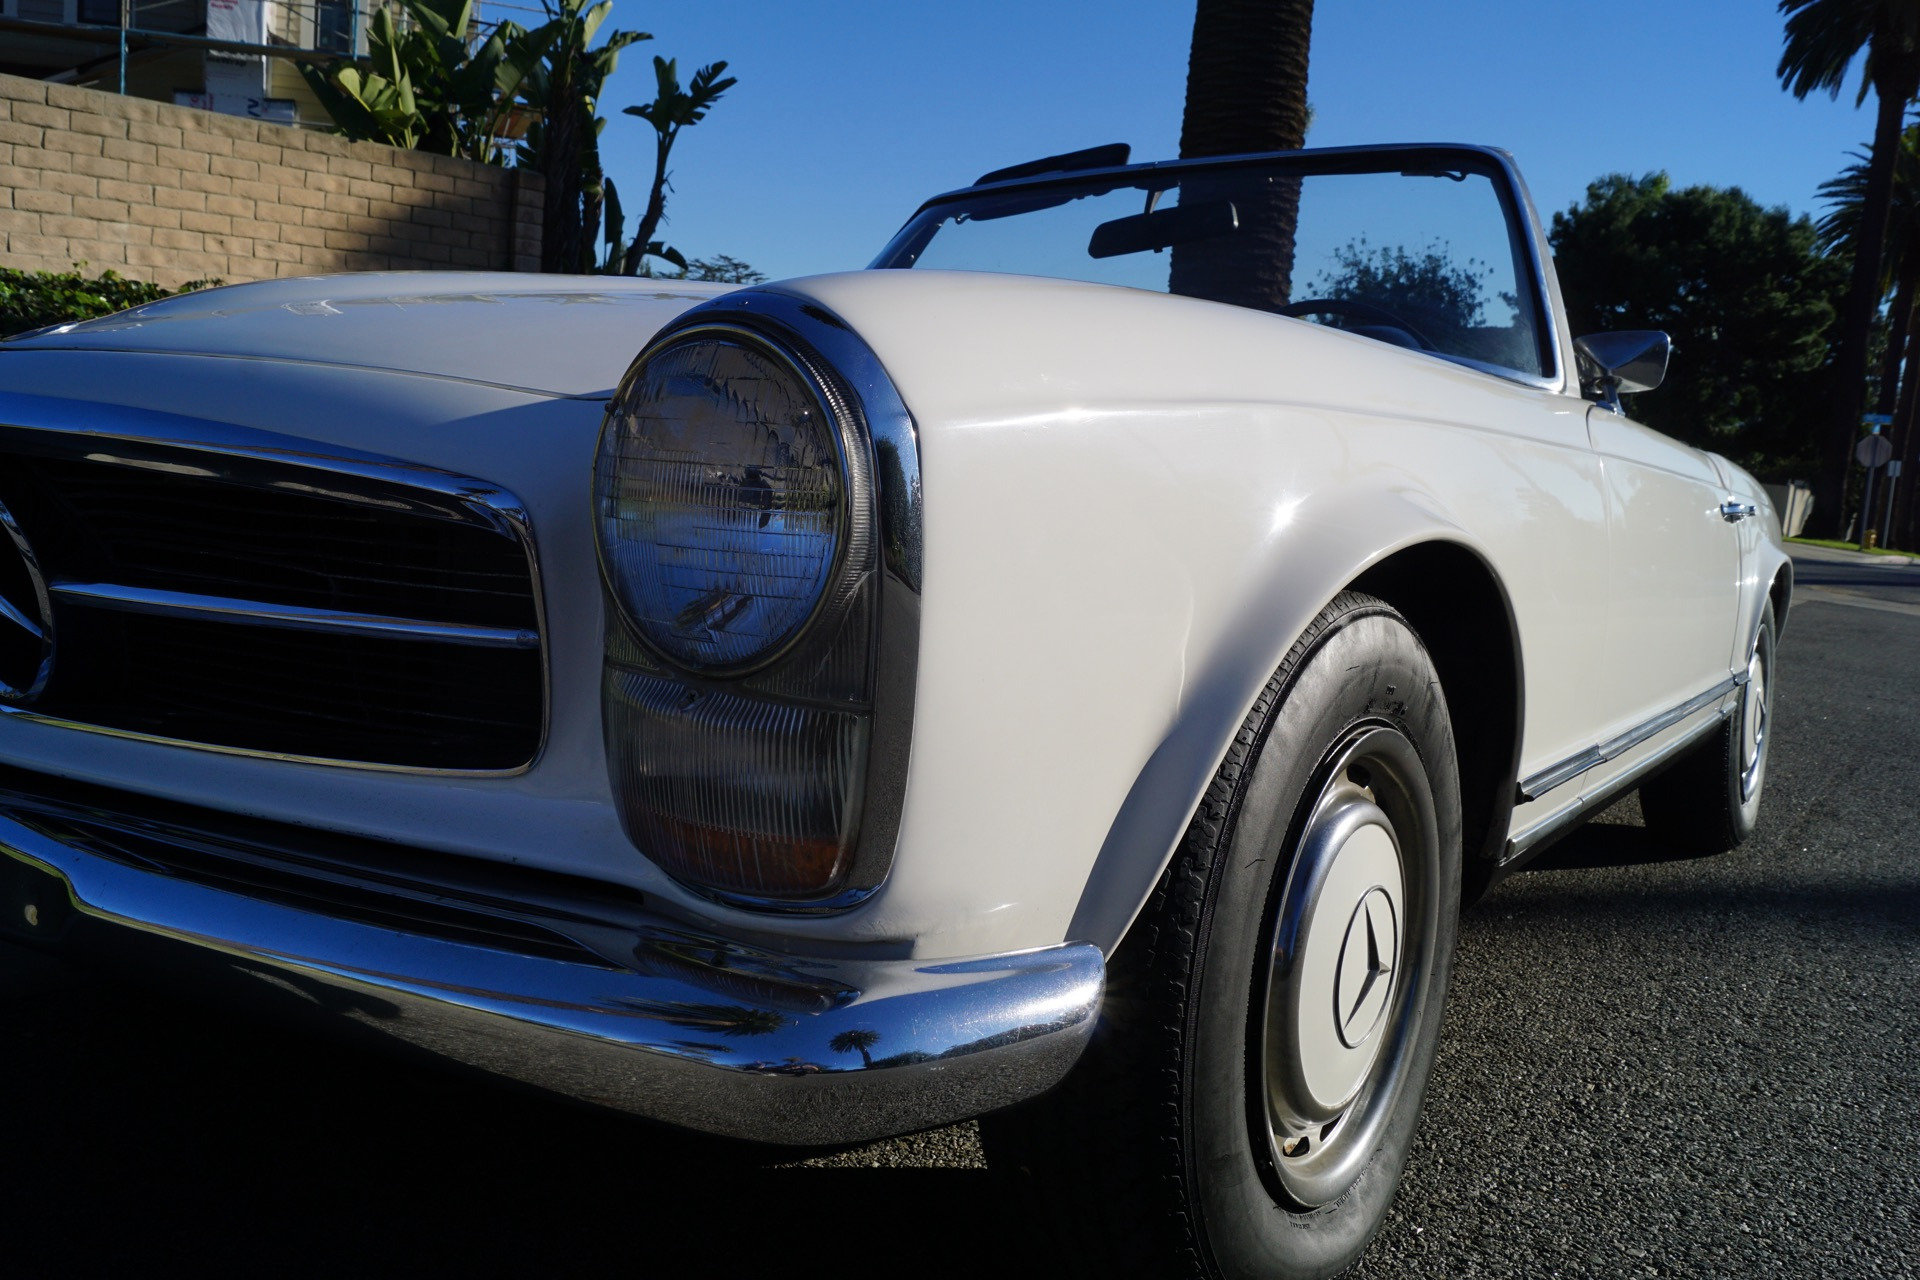 1967 mercedes benz 230sl stock 742 for sale near for Mercedes benz torrance ca